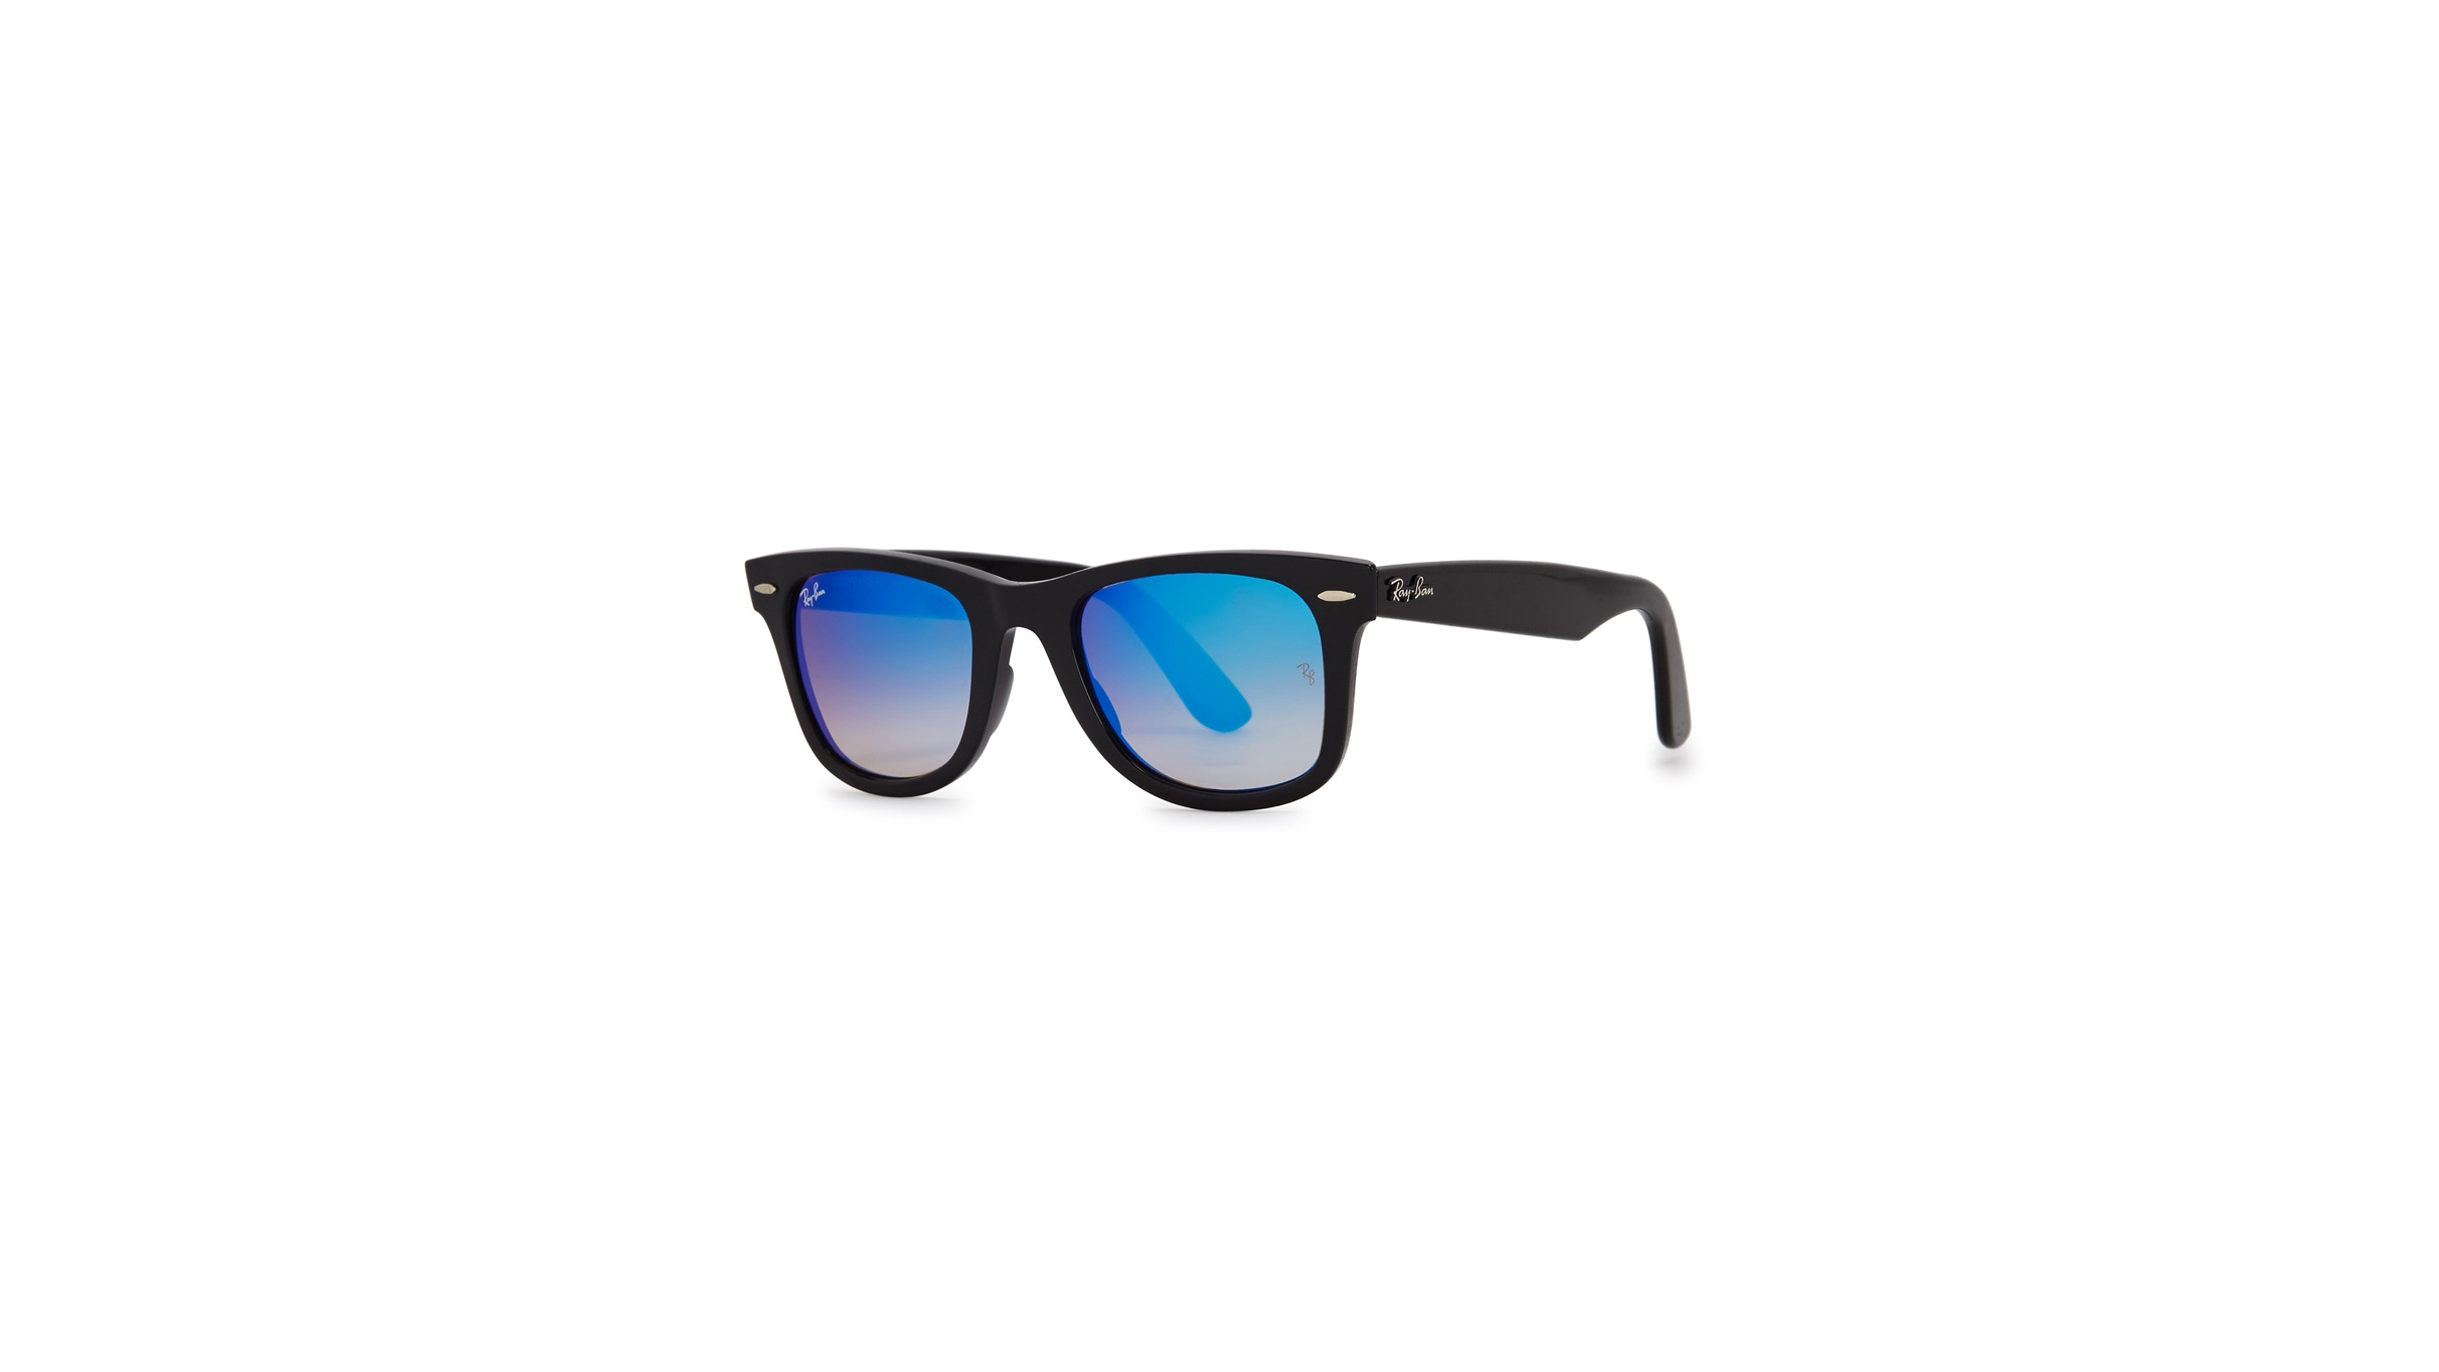 b19b3987b80 Ray-Ban Wayfarer Ease mirrored sunglasses - Harvey Nichols